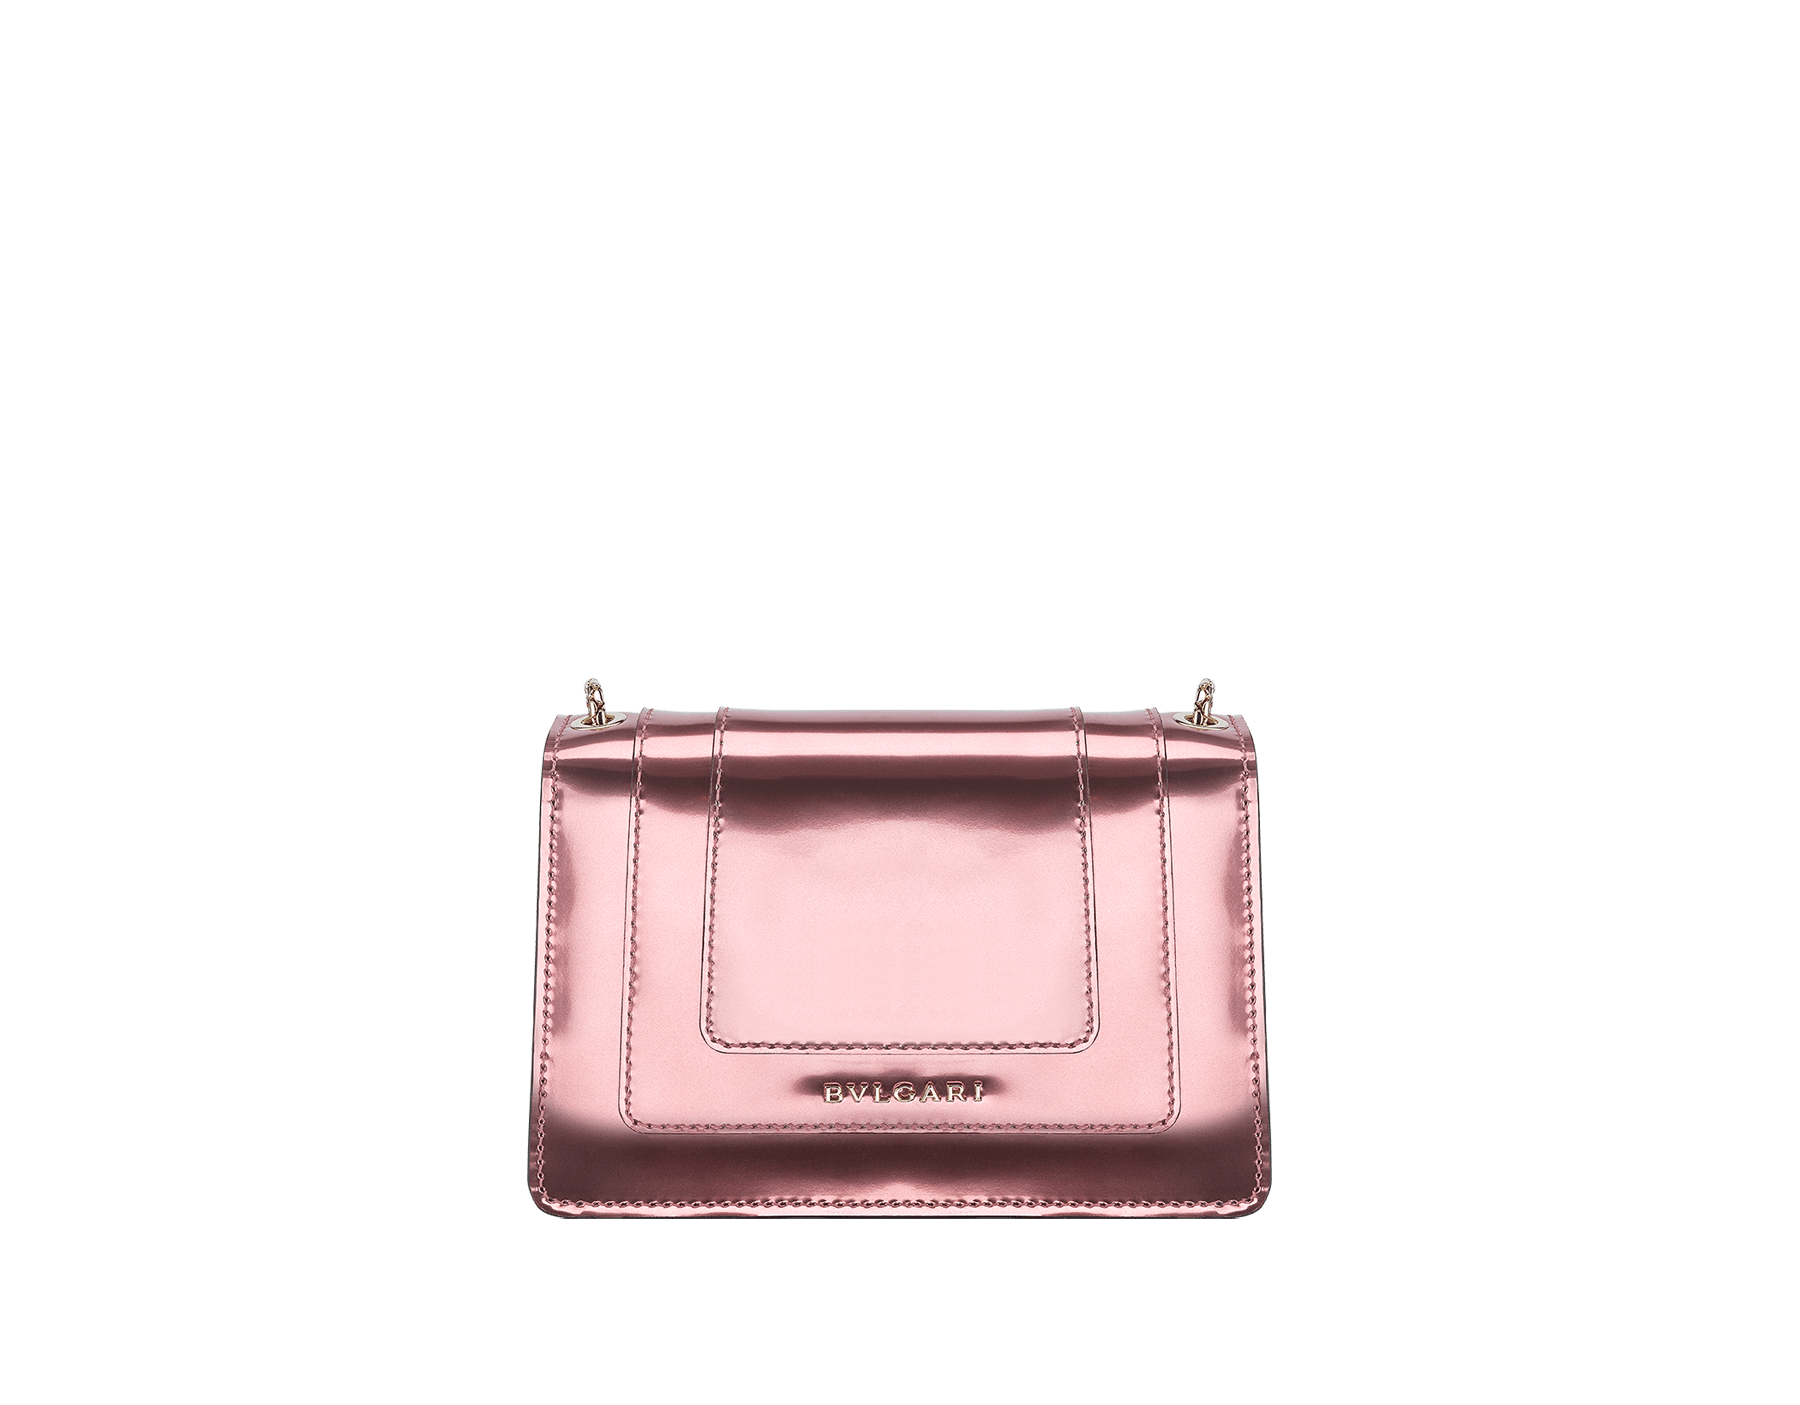 Serpenti Forever mini crossbody bag in sunset rose brushed metallic calf leather. Brass light gold-plated snake head closure in black and white enamel, with green malachite eyes. 288052 image 3